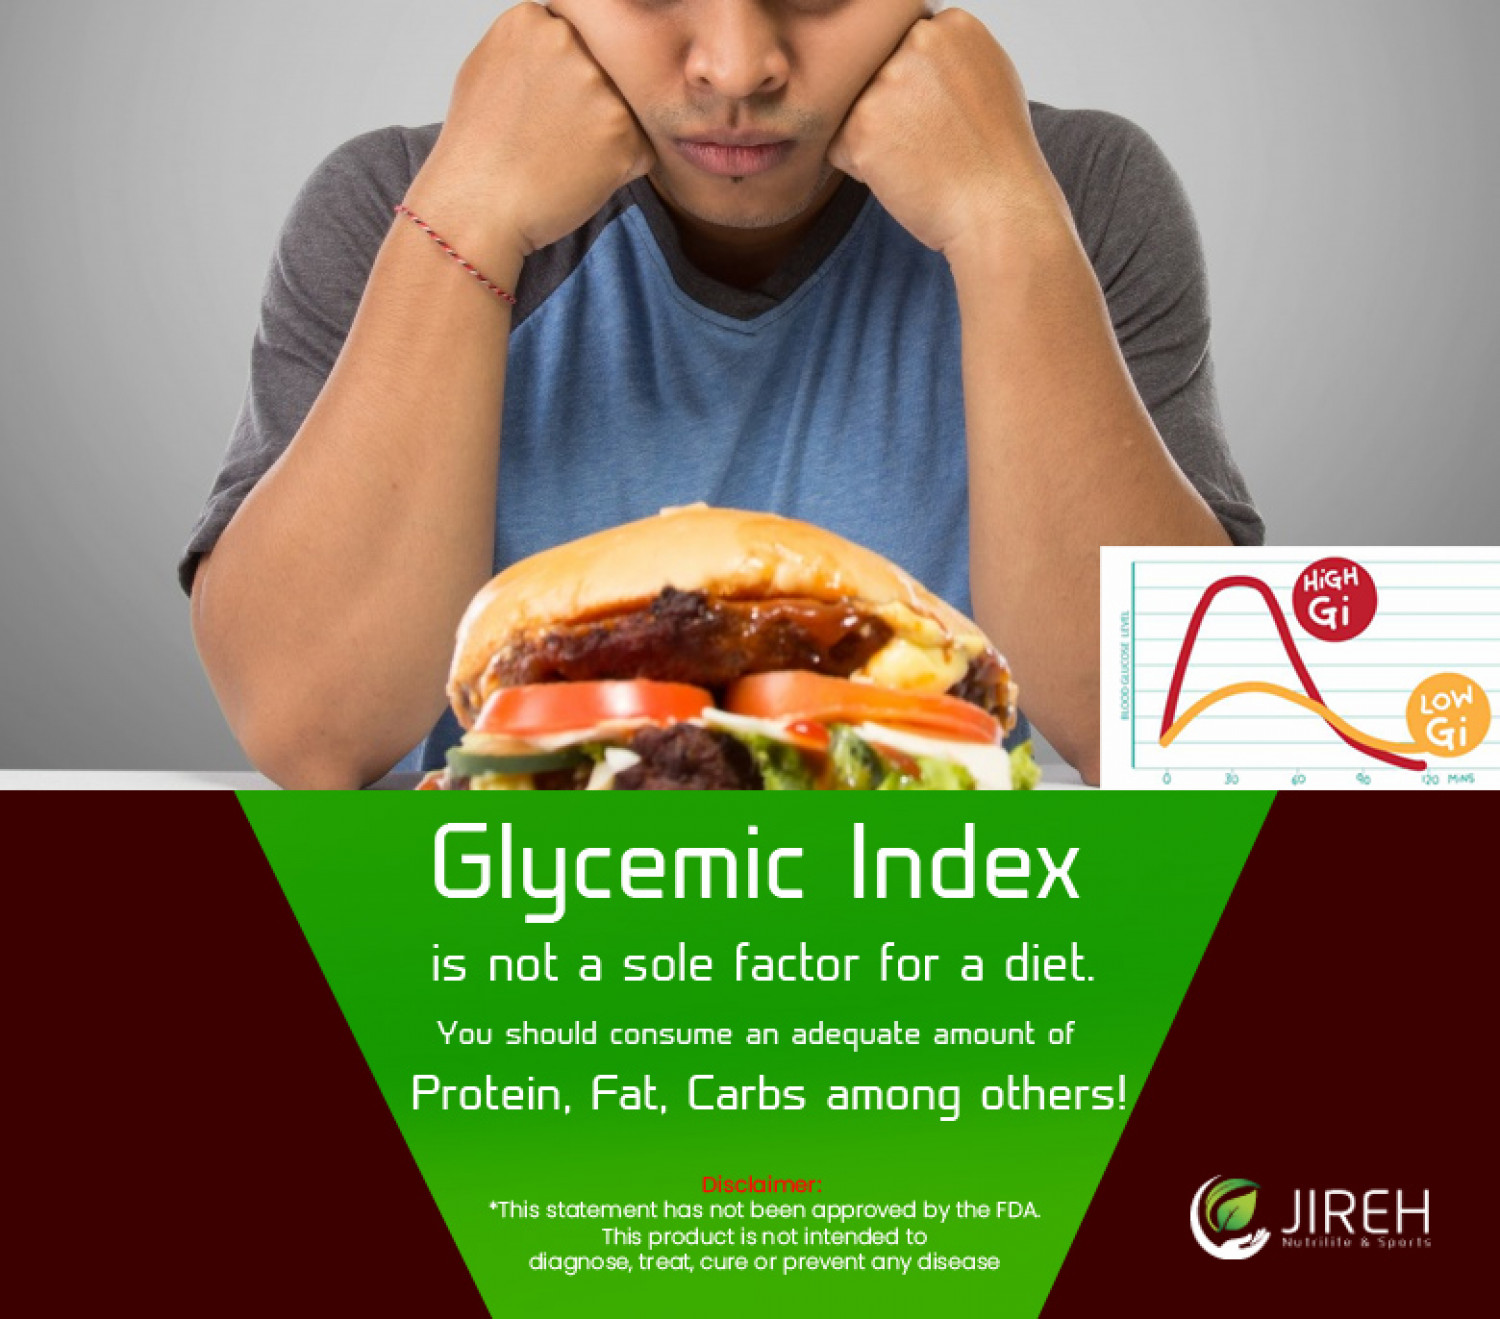 Glycemic Index Infographic